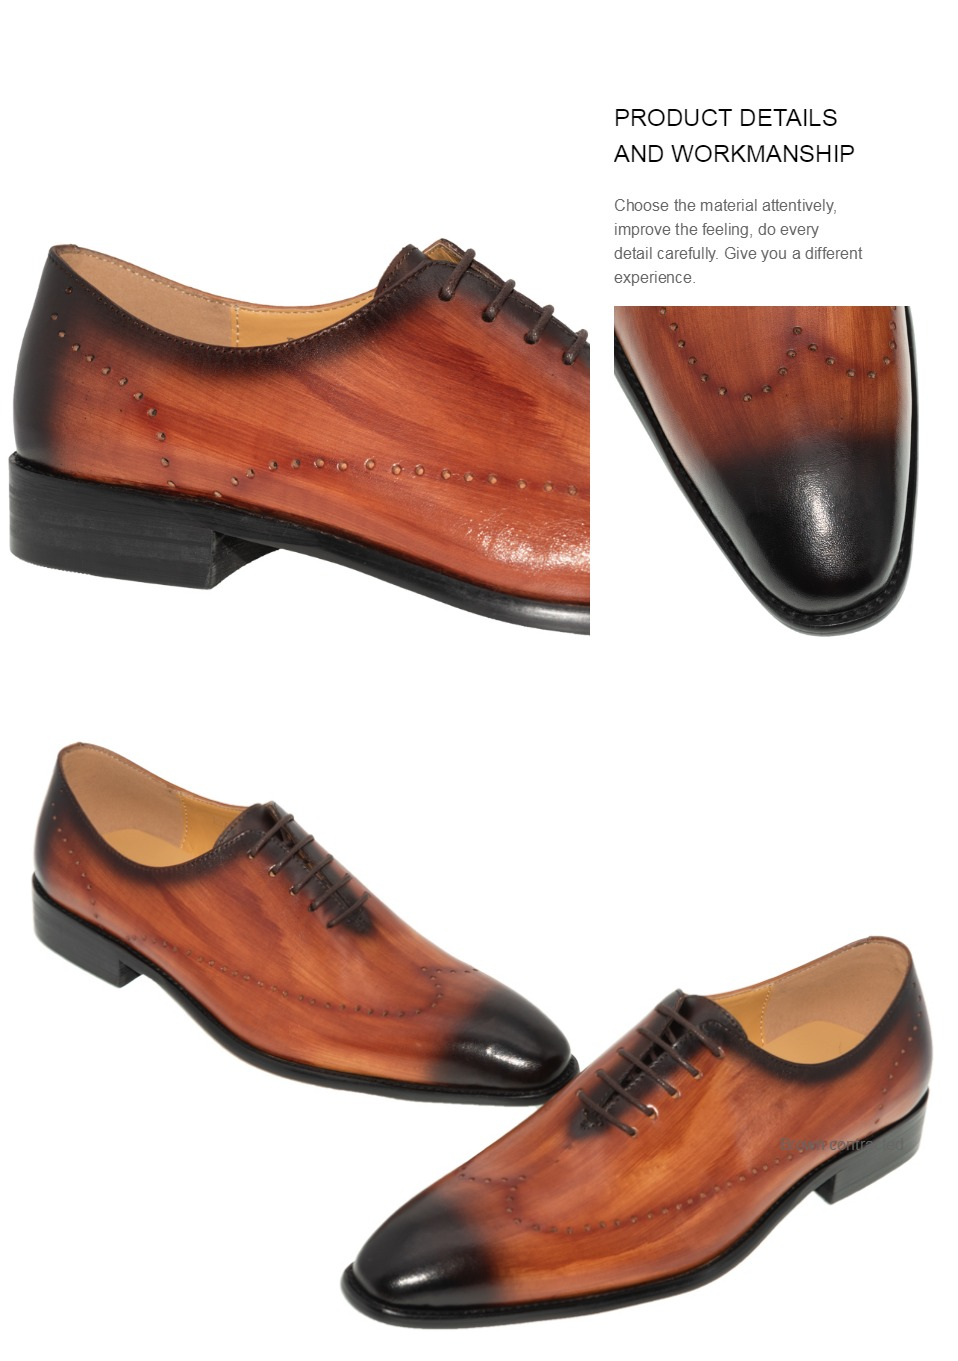 Genuine Leather Men Dress Shoes Office Business Wedding Mixed Brown Color Luxury Formal brogue Pointed Toe Oxfords Mens Shoes 4